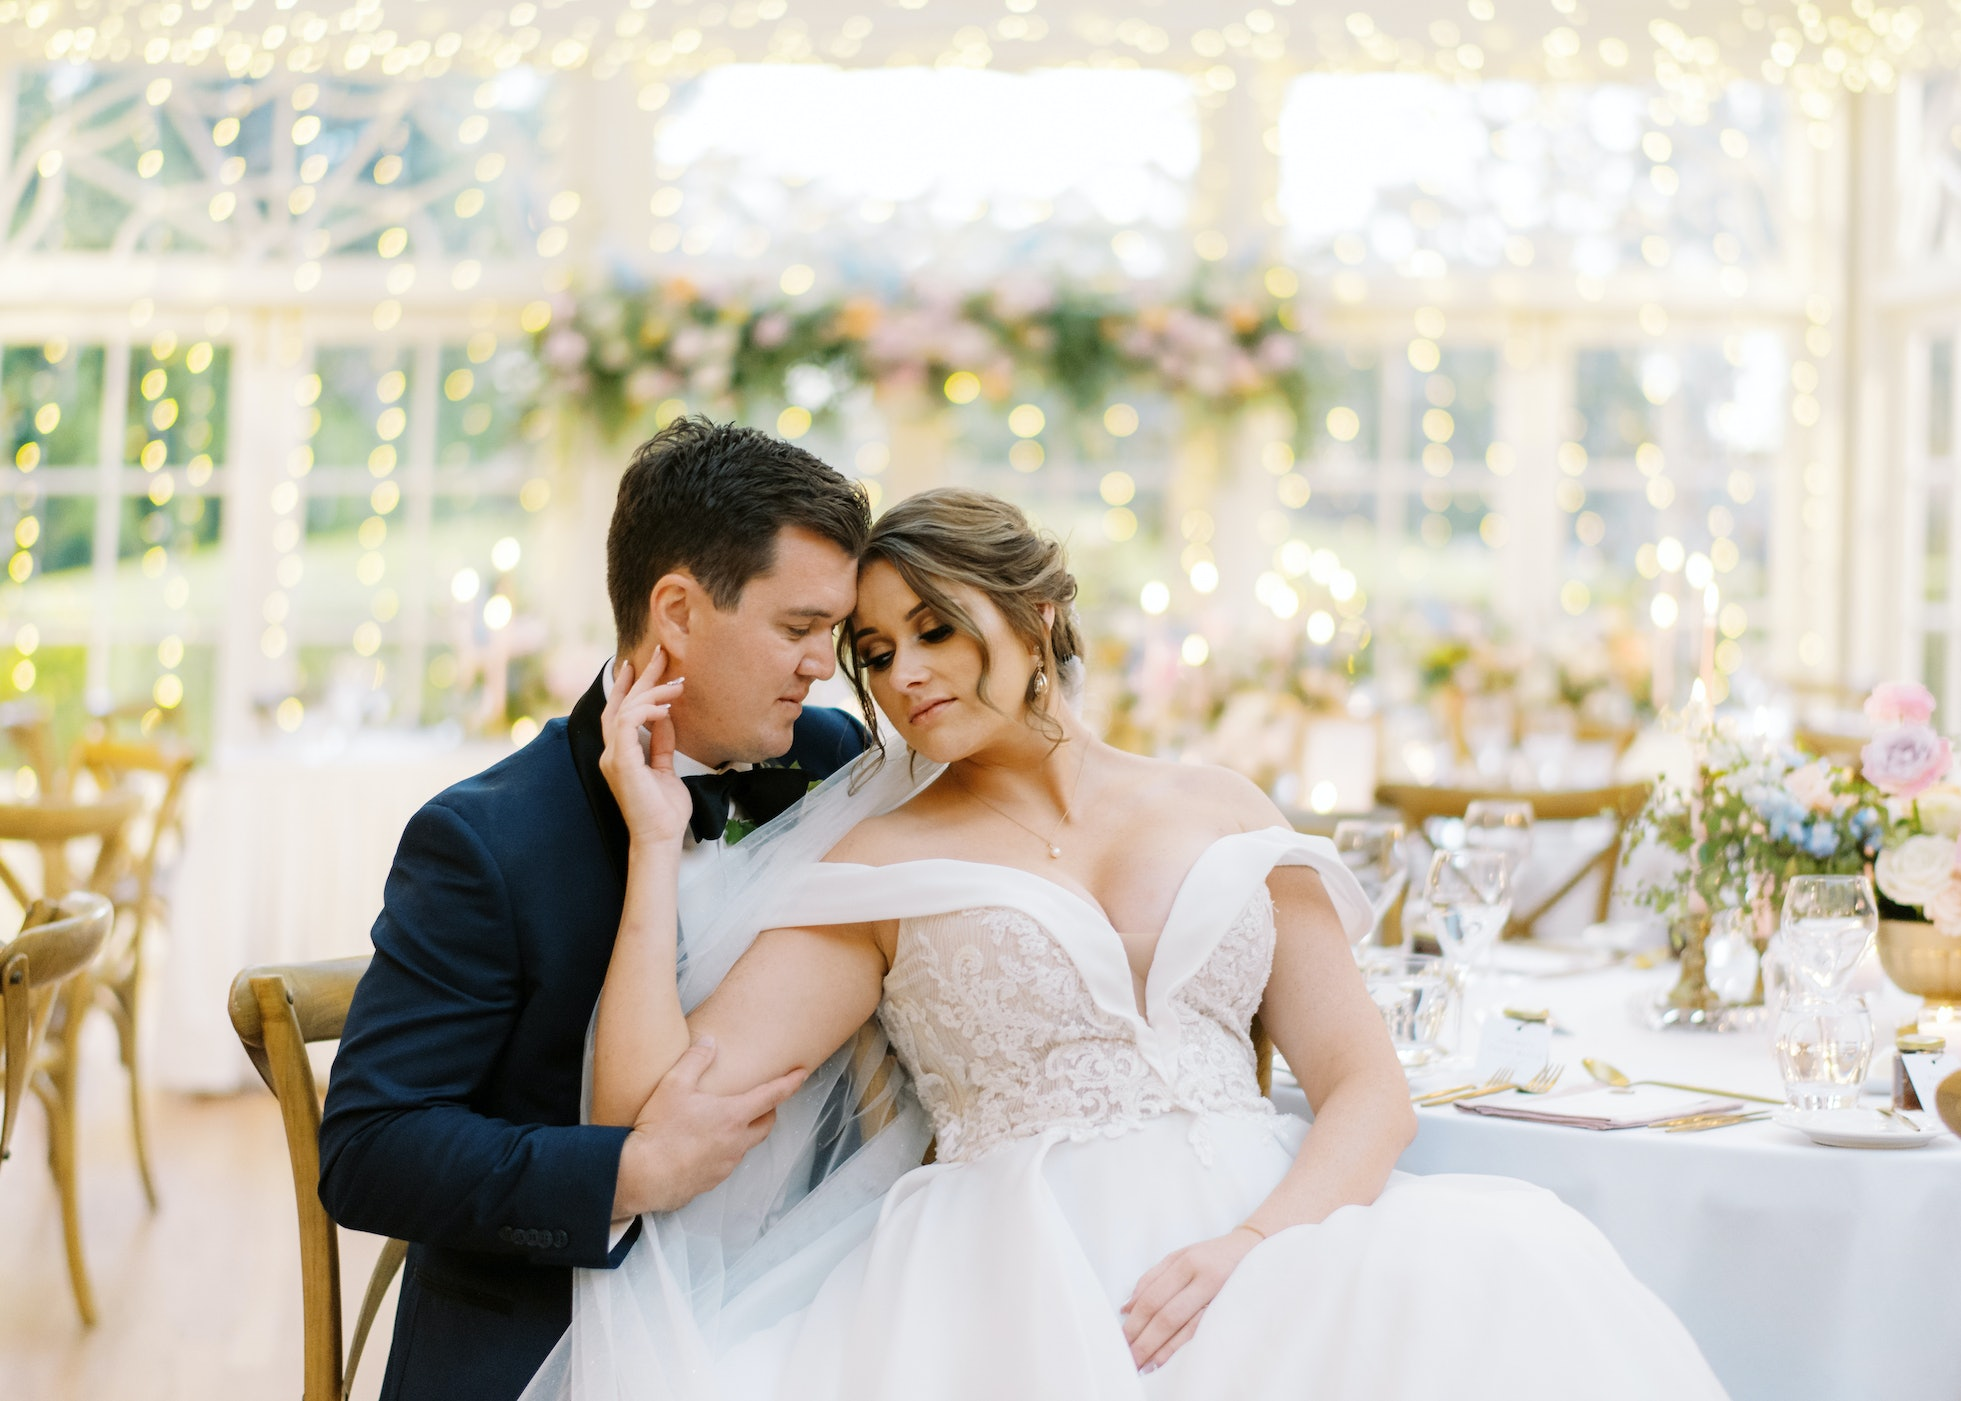 Bride and groom sitting on chairs together